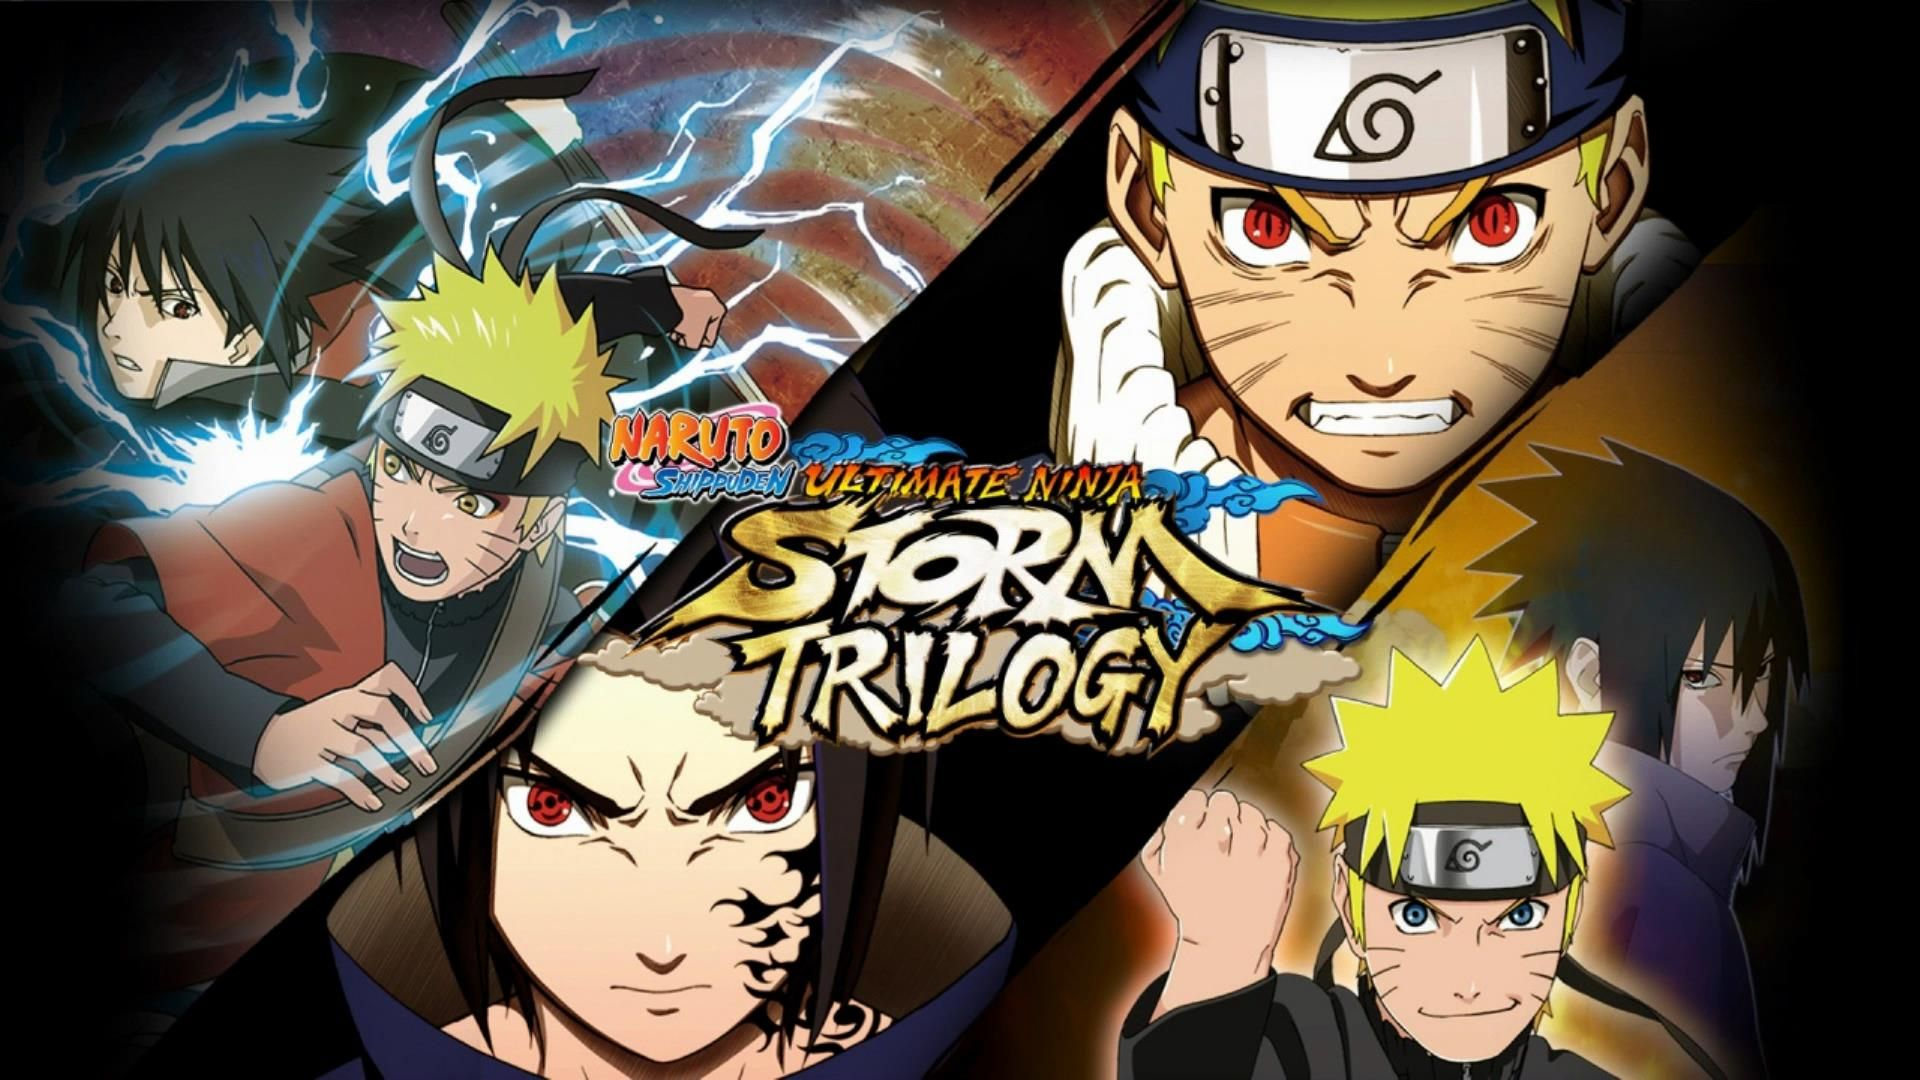 Nintendo Everything Naruto shippuden, Anime, Naruto